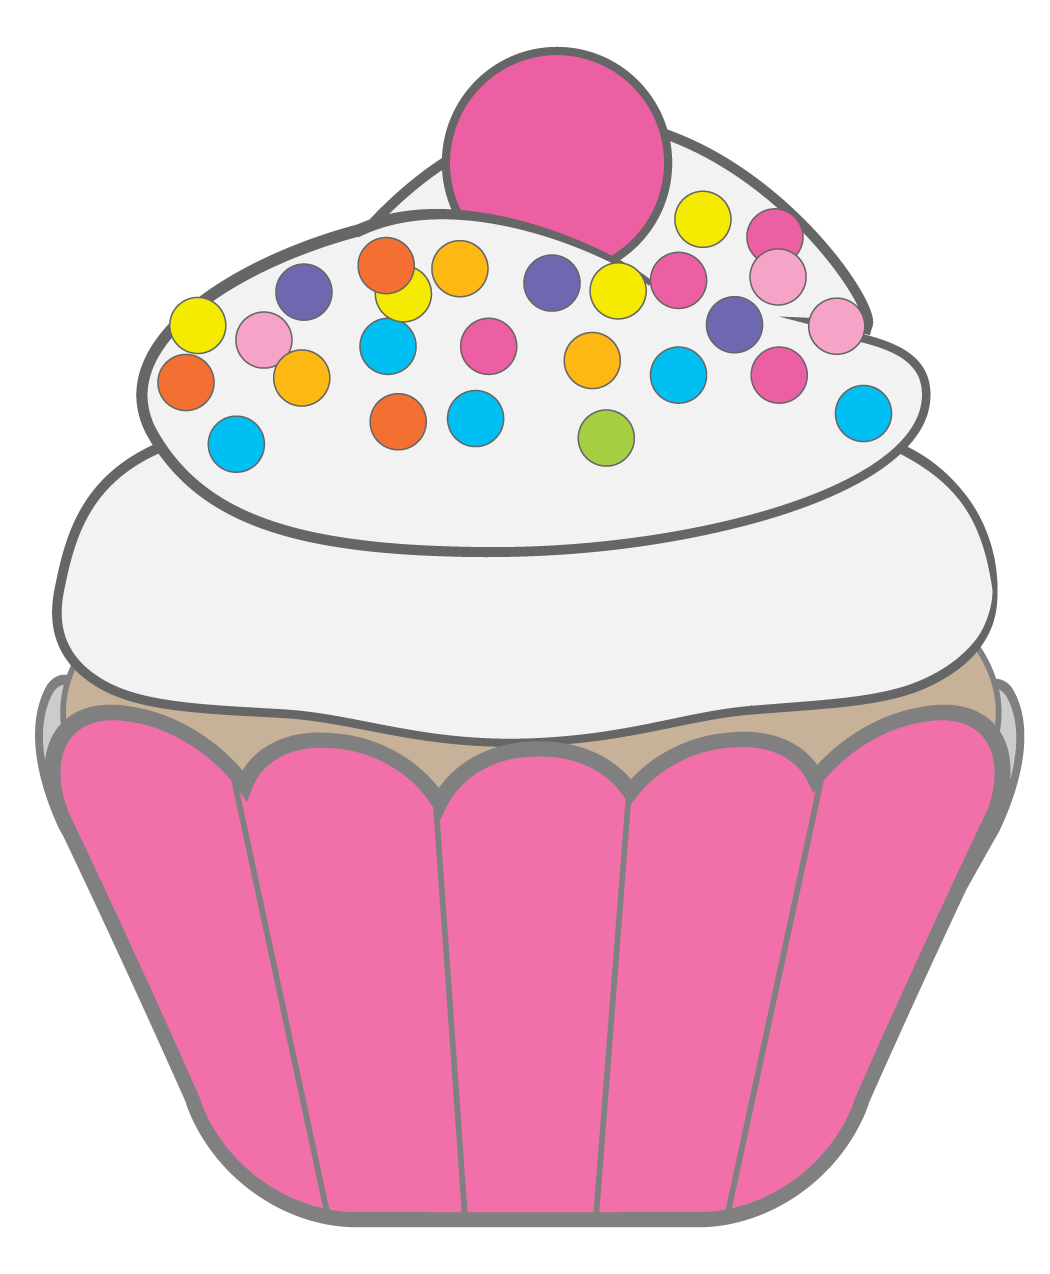 vector royalty free stock Cute cupcake clip art